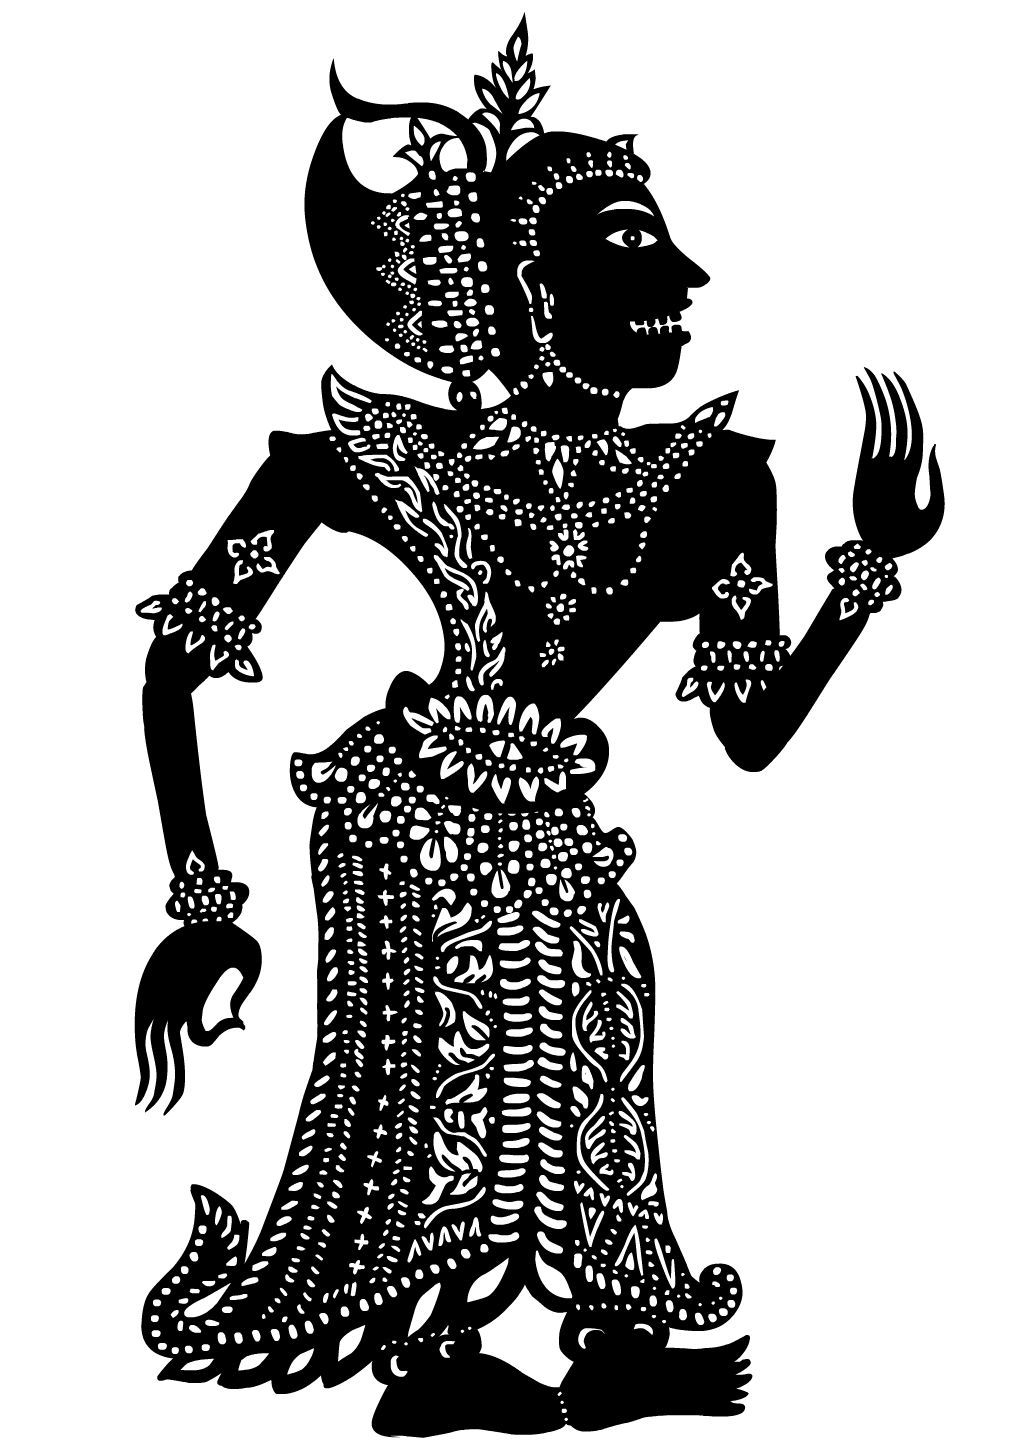 Character From Film Sita Sings The Blues Modeled On